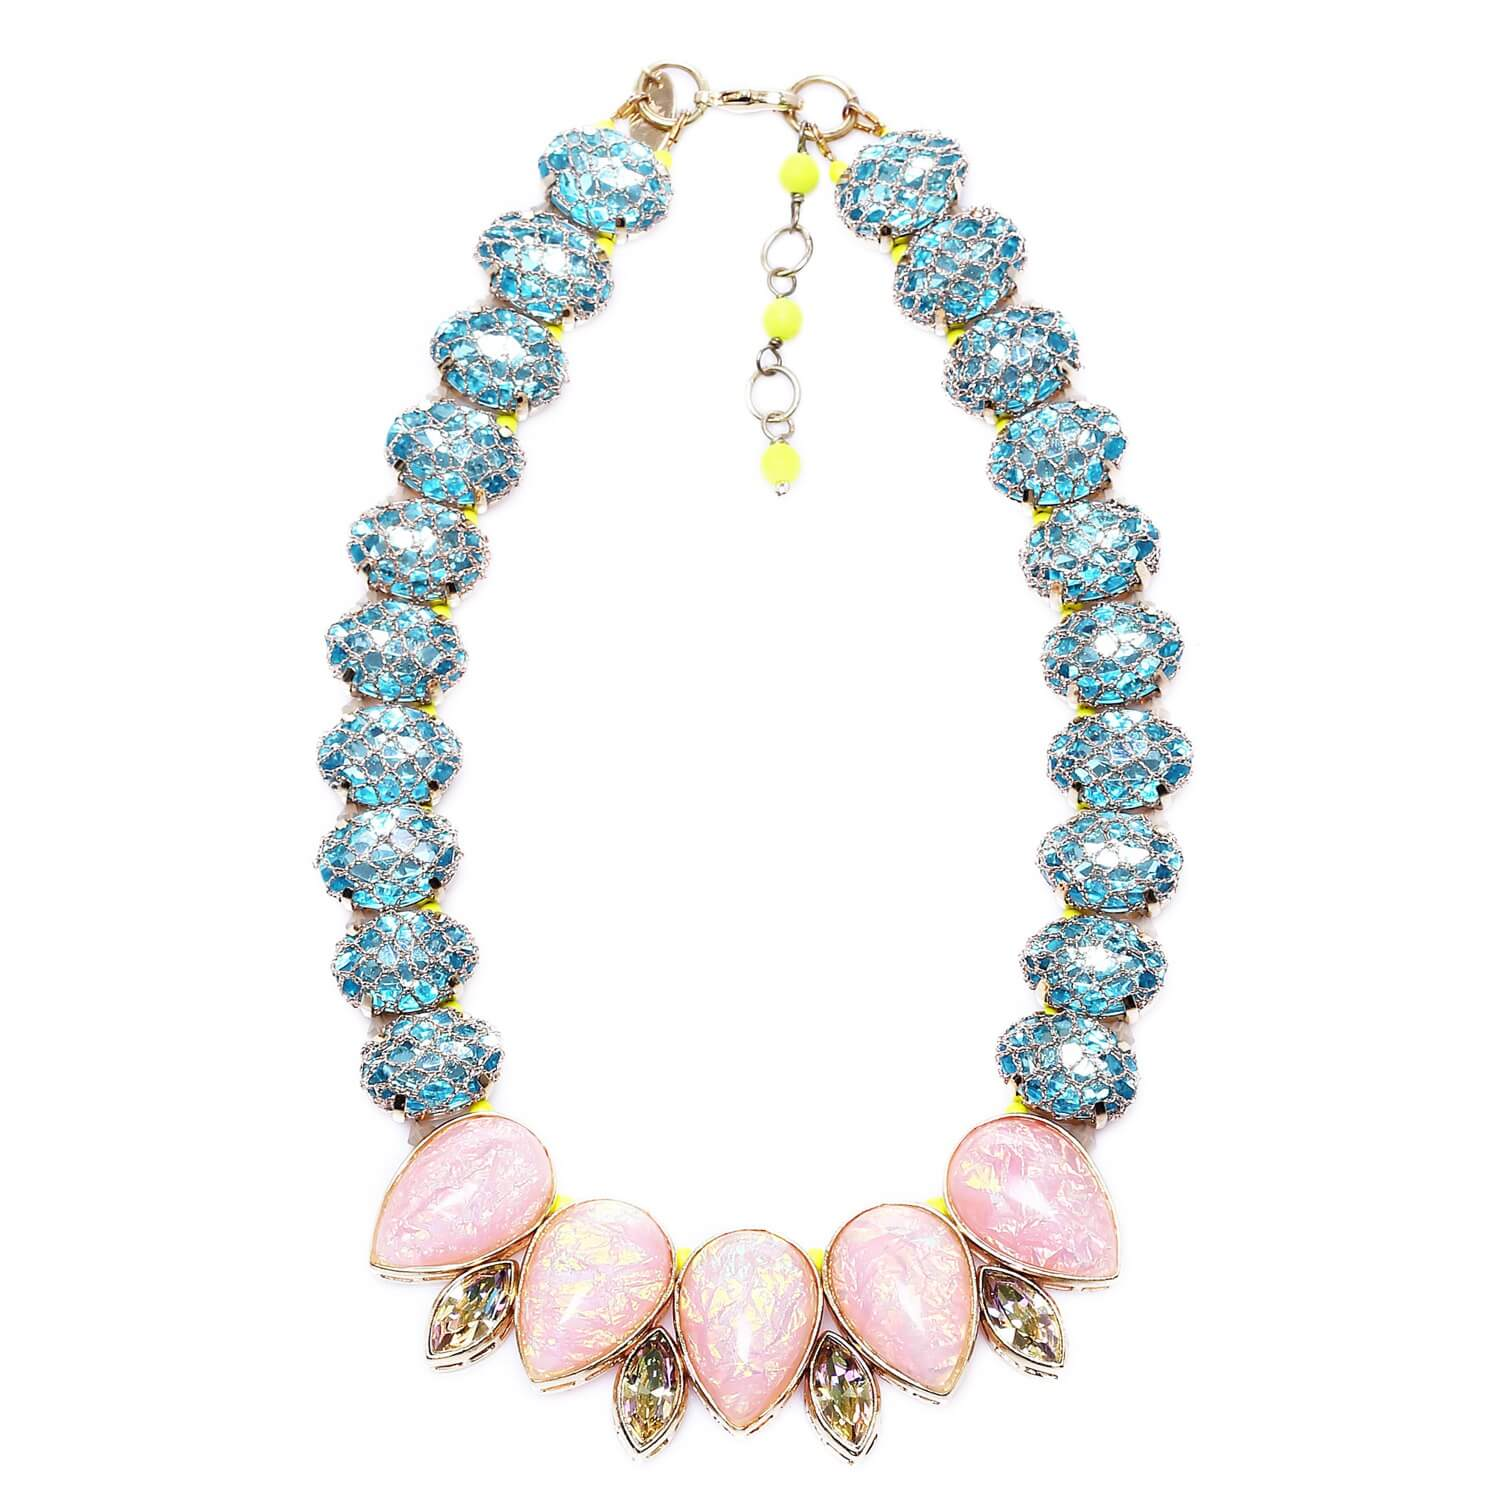 Venus Rose Teardrop Necklace - Blush Sapphire